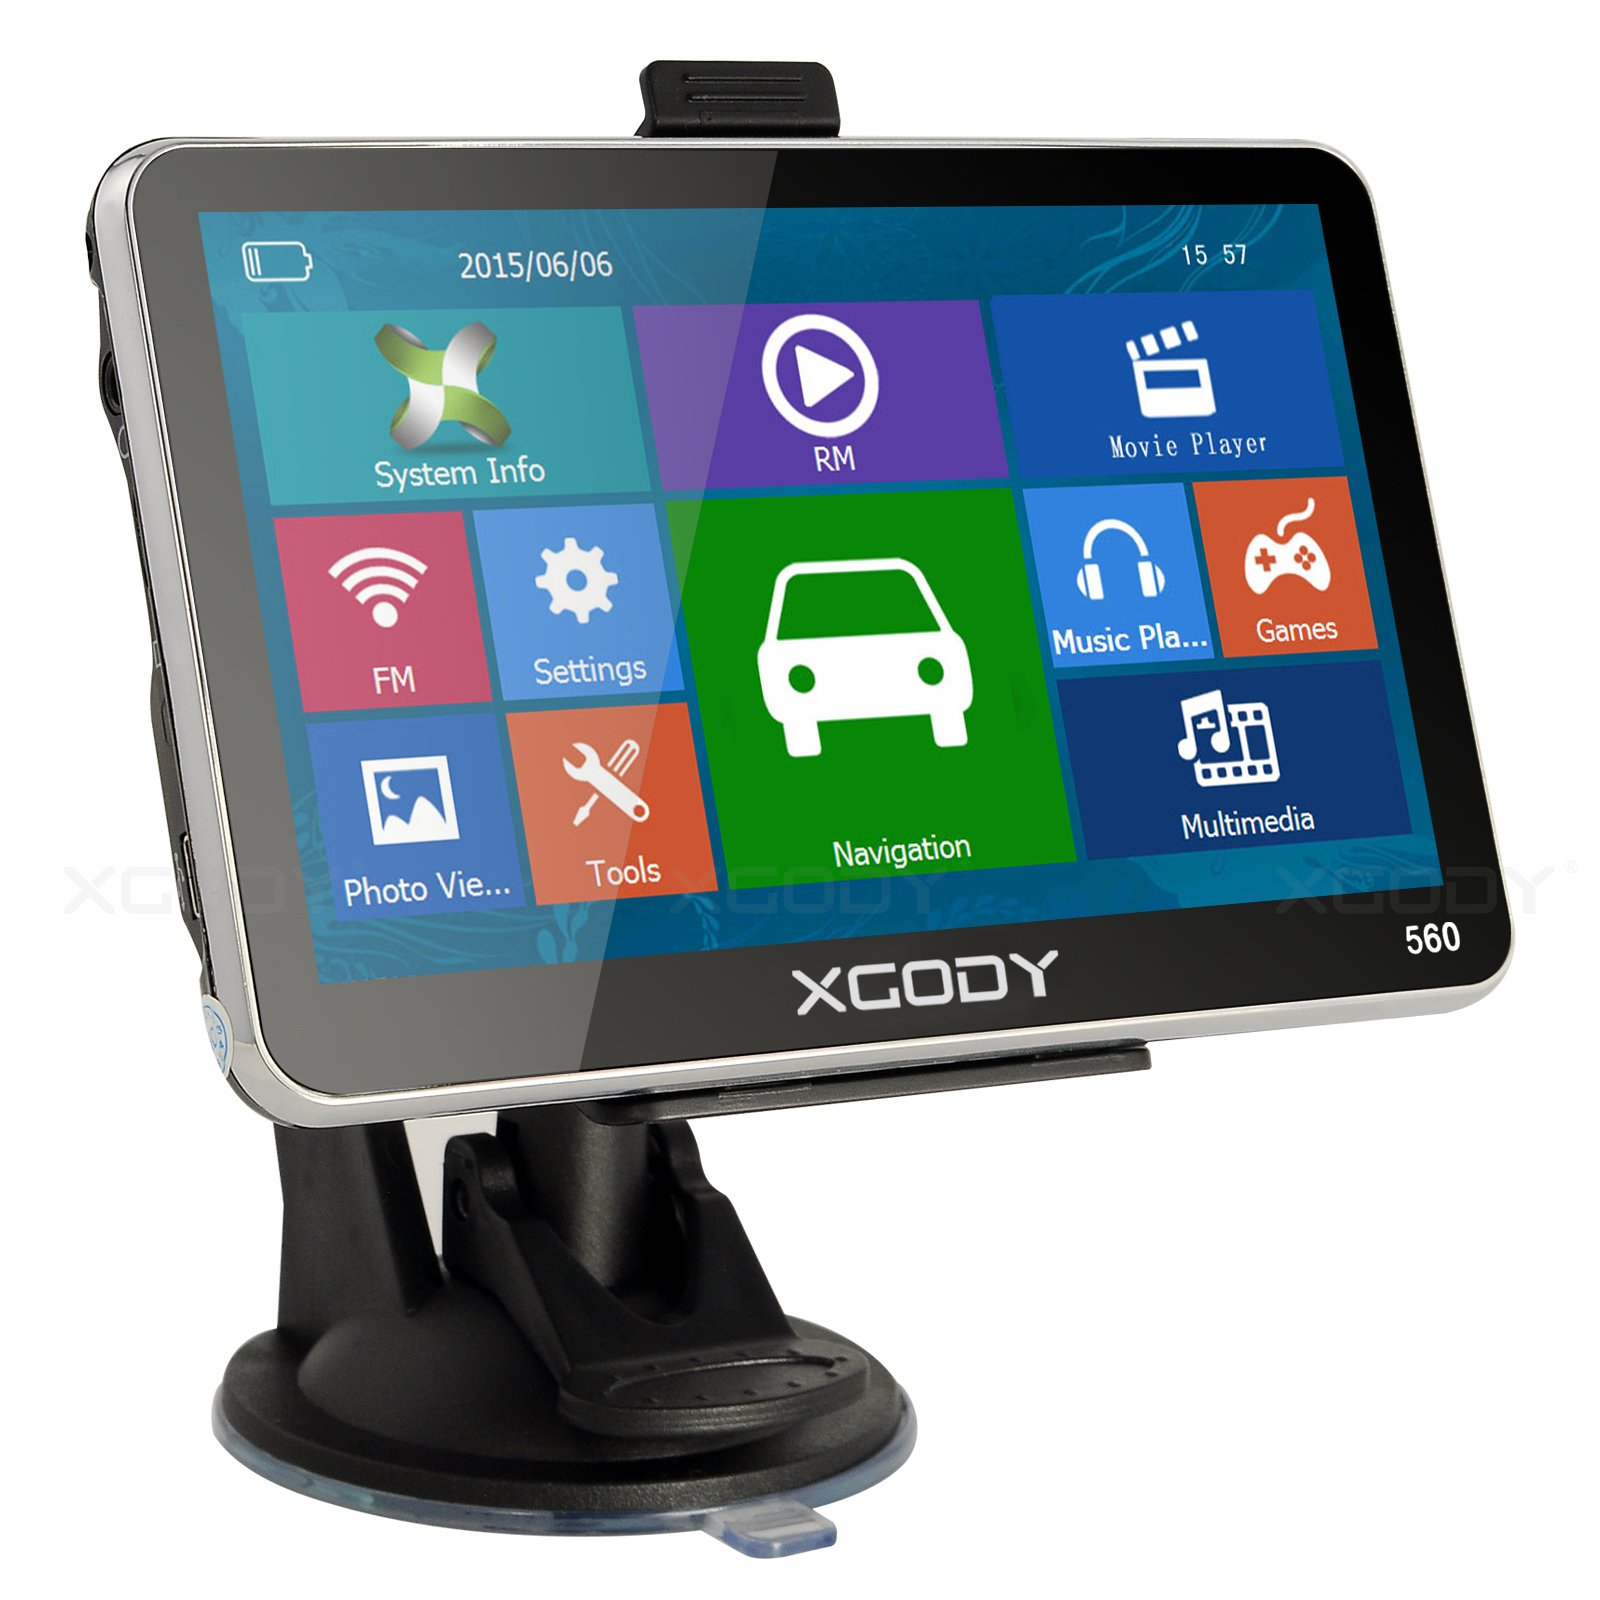 XGody 560 Large Touch Screen Navigation System